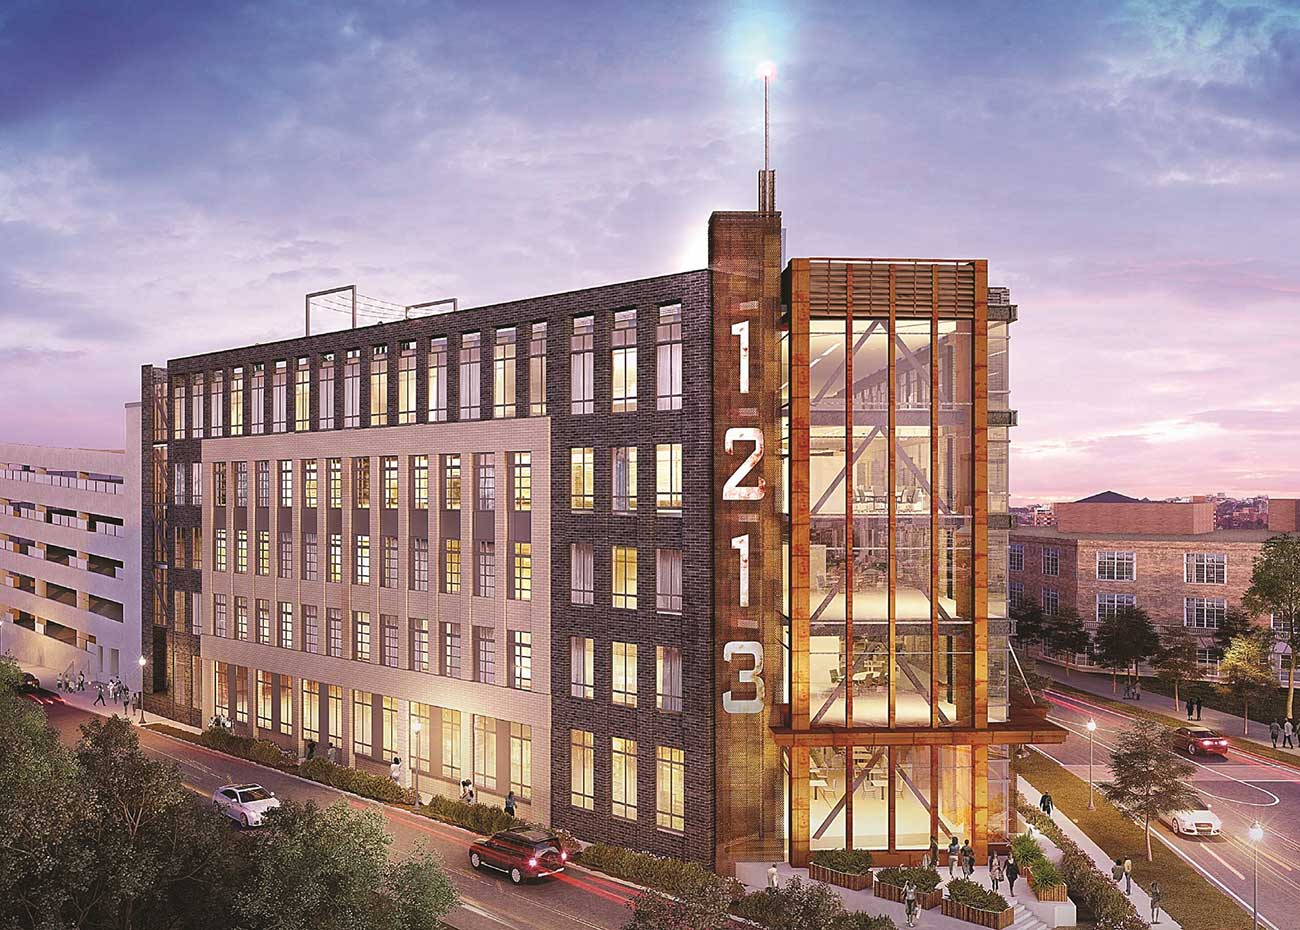 New coworking space becomes first tenant signed at Refinery building on West Morehead